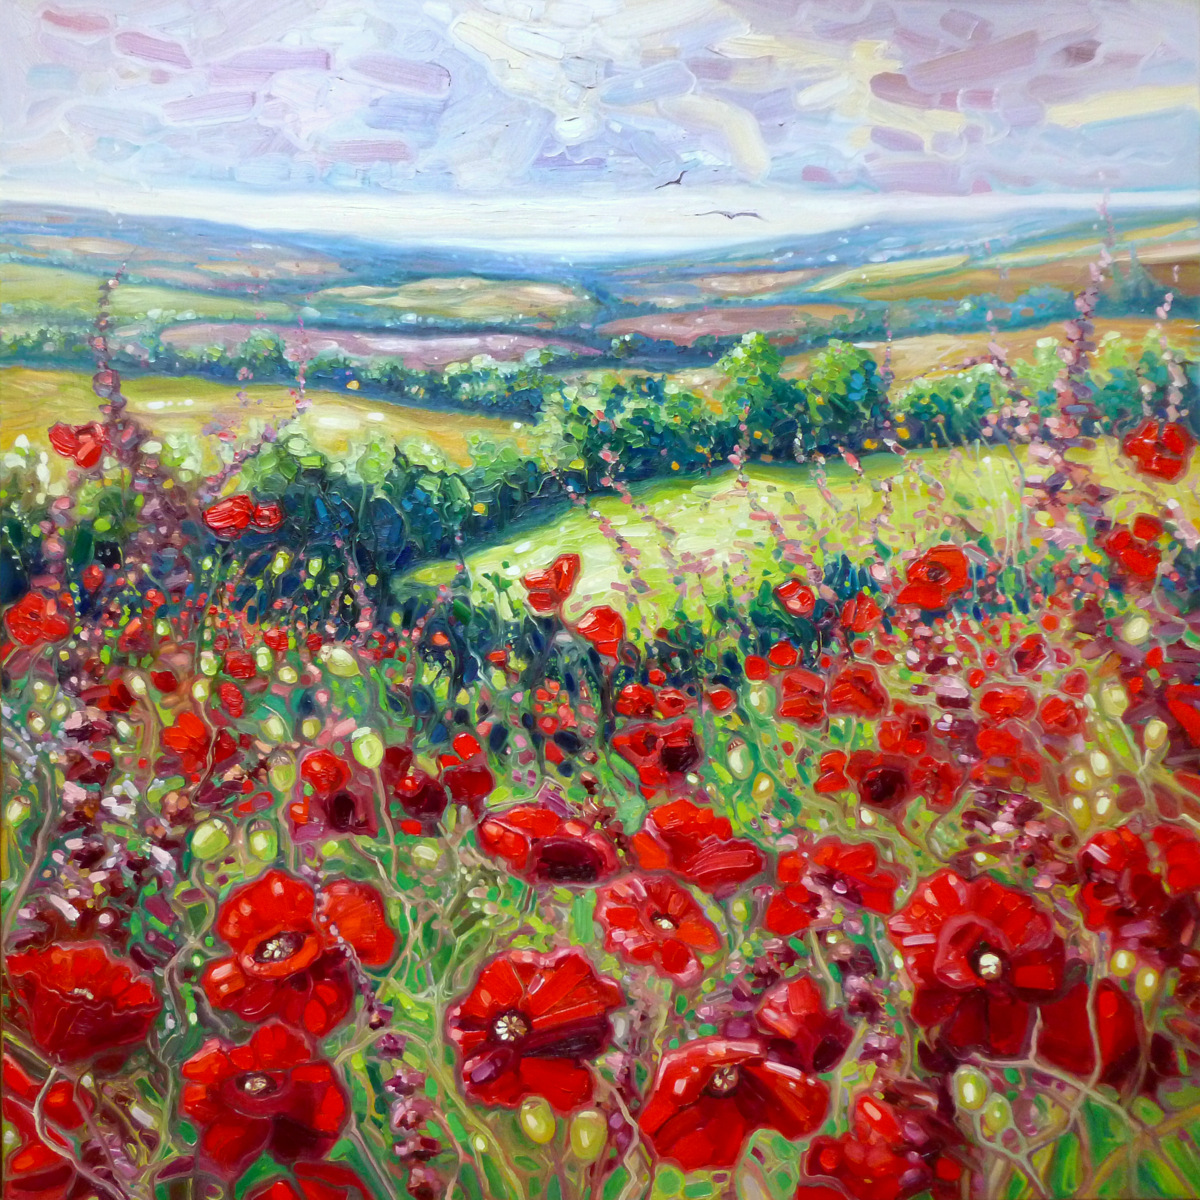 Summer poppies in a Sussex meadow by Gill Bustamante